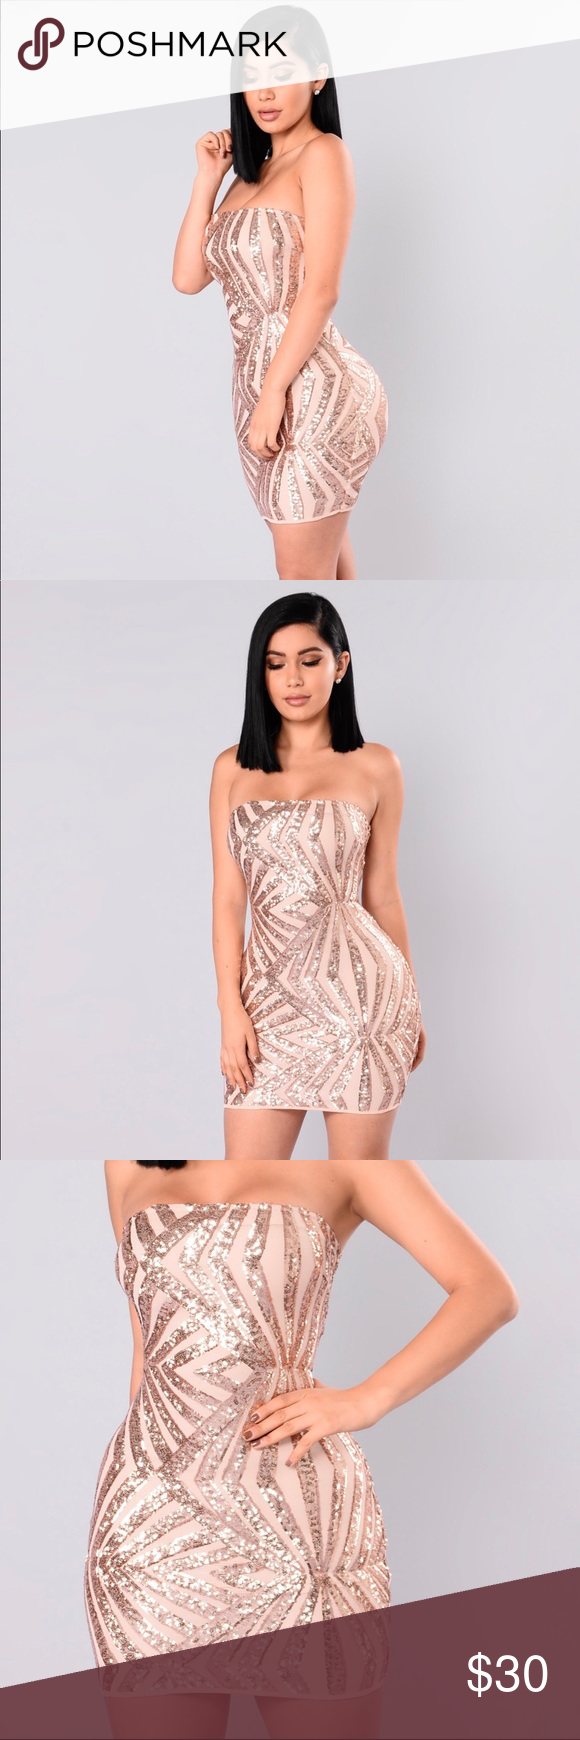 Strapless Sequin Dress Brand new & never worn in a rose